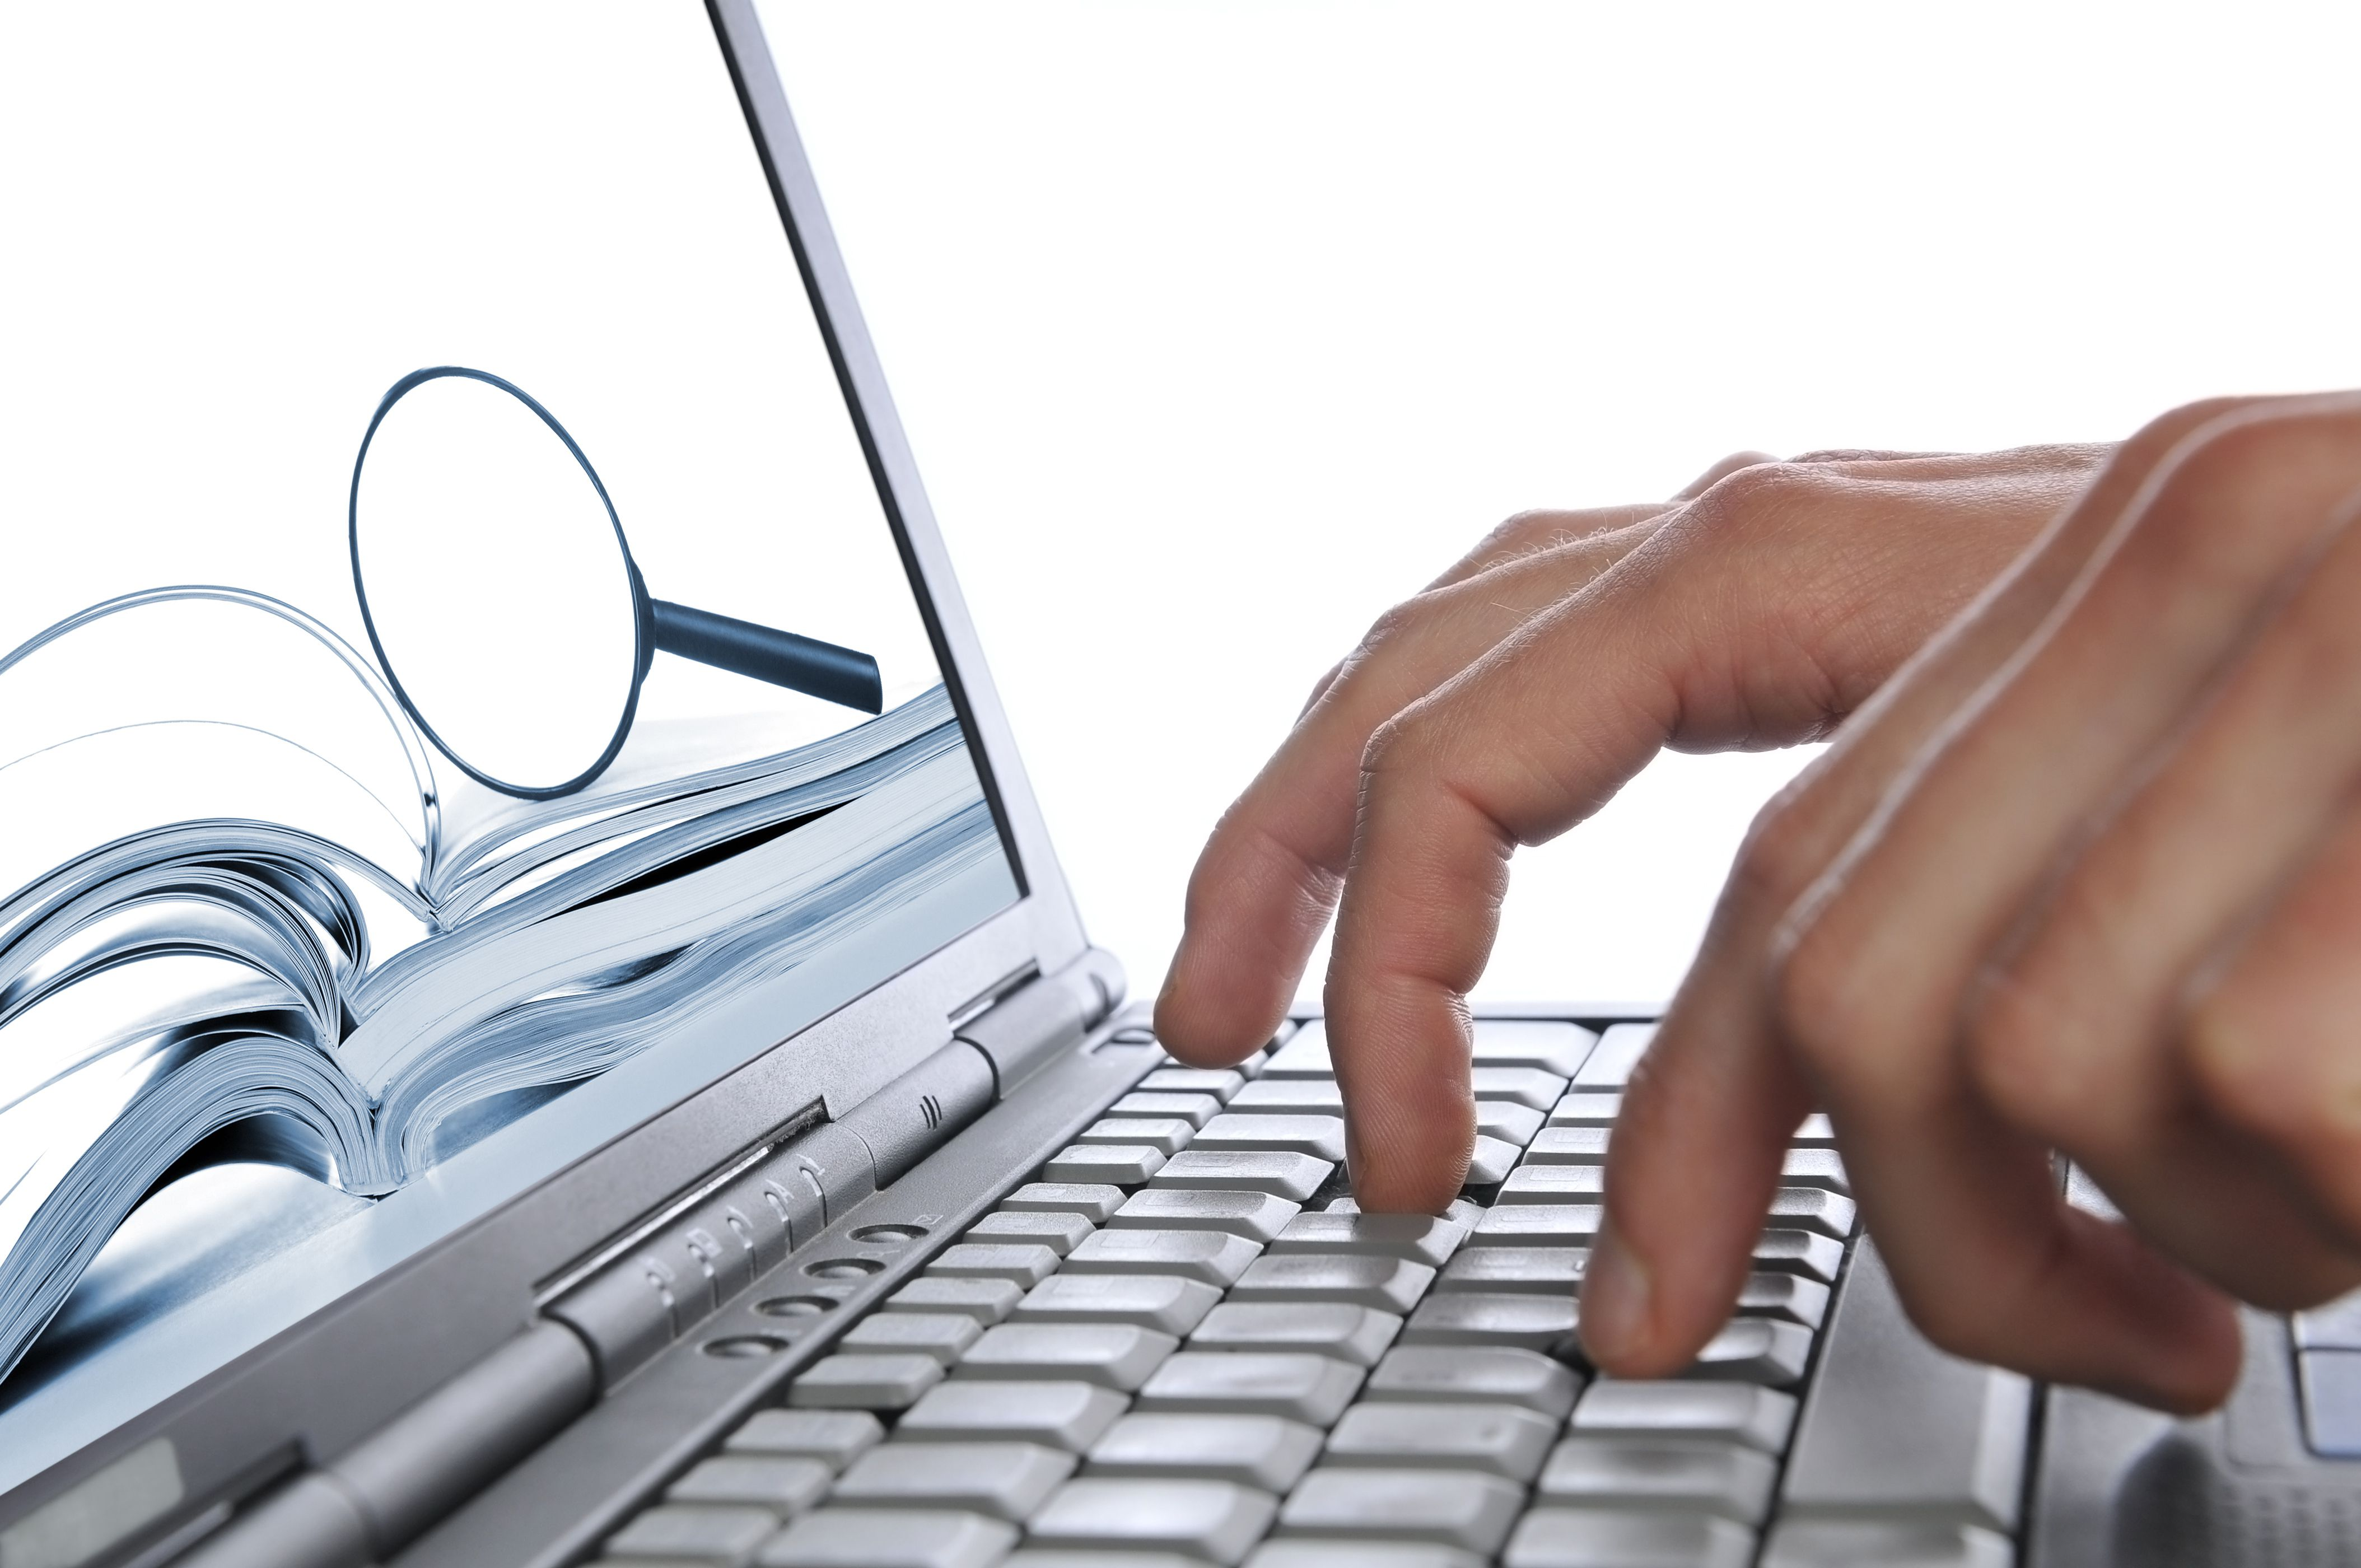 Searching internet, man's hands laptop keyboard, magnifying glass on screen